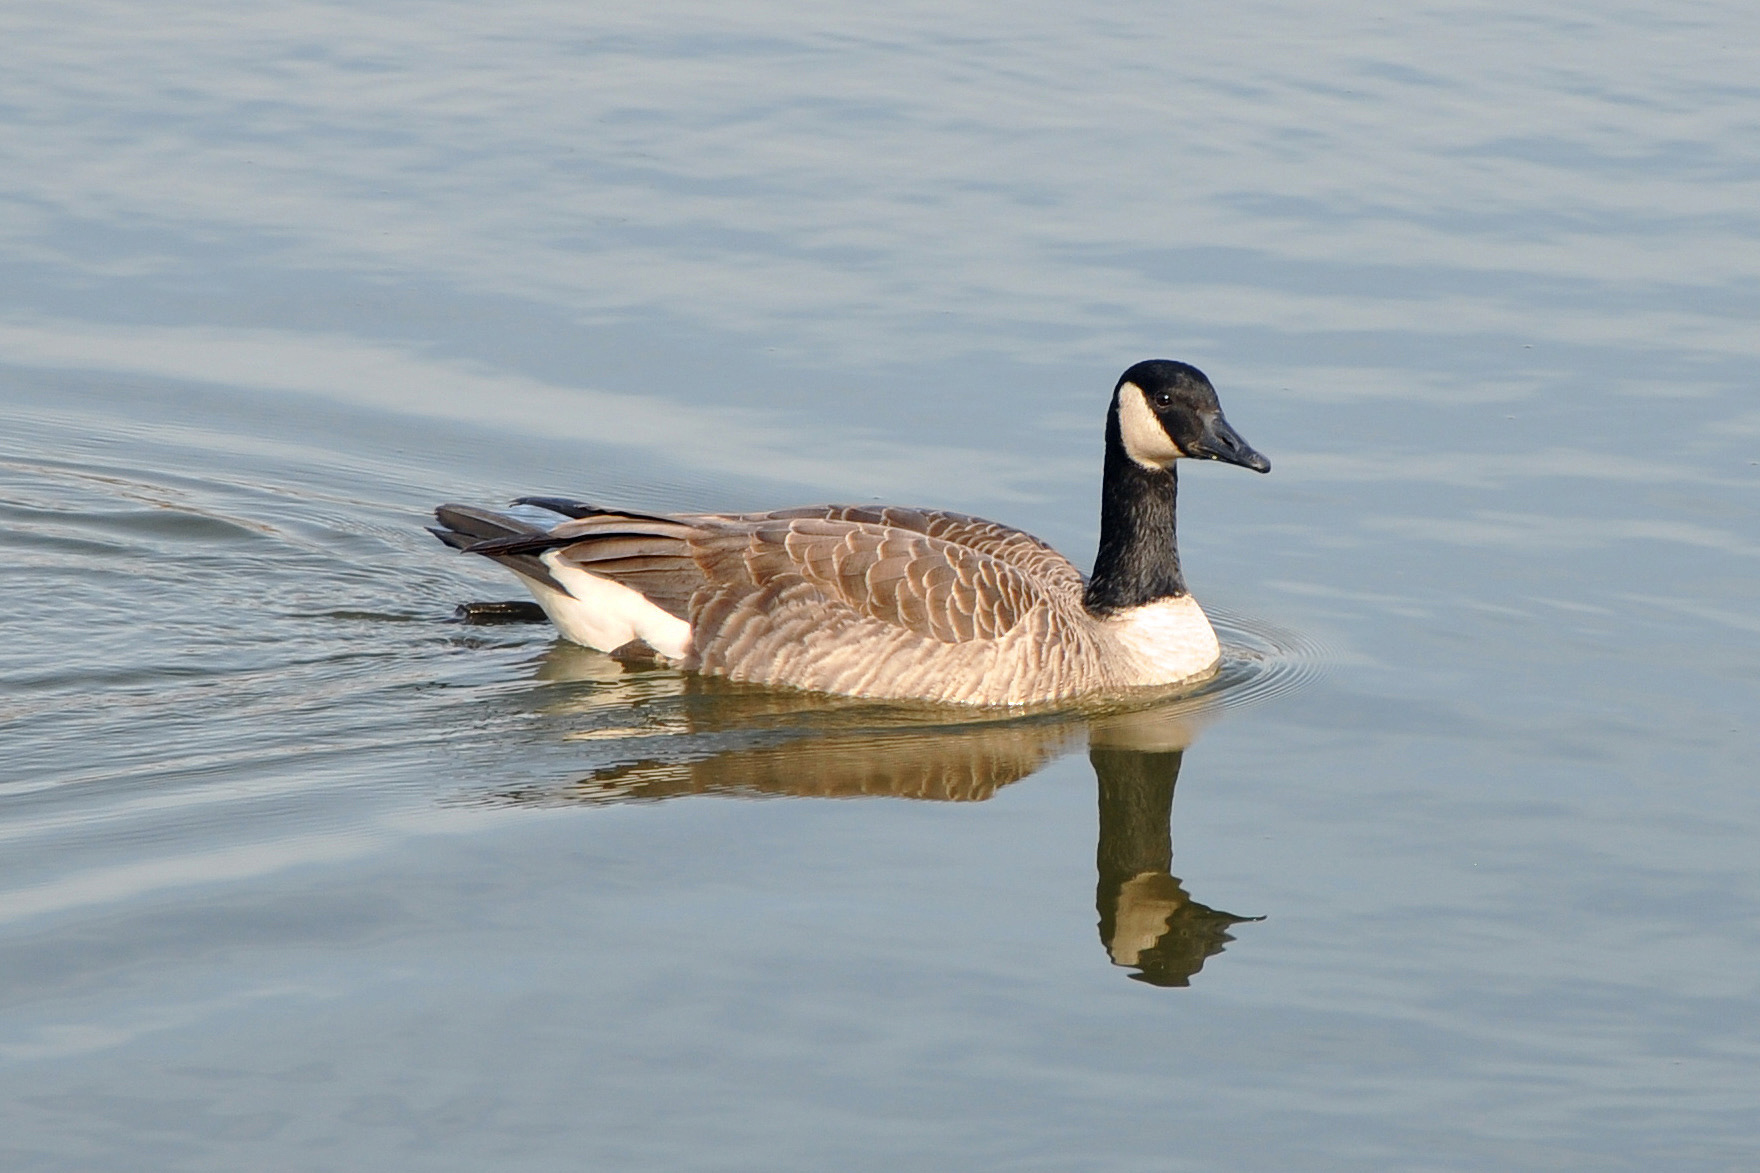 Description canada goose (branta canadensis)